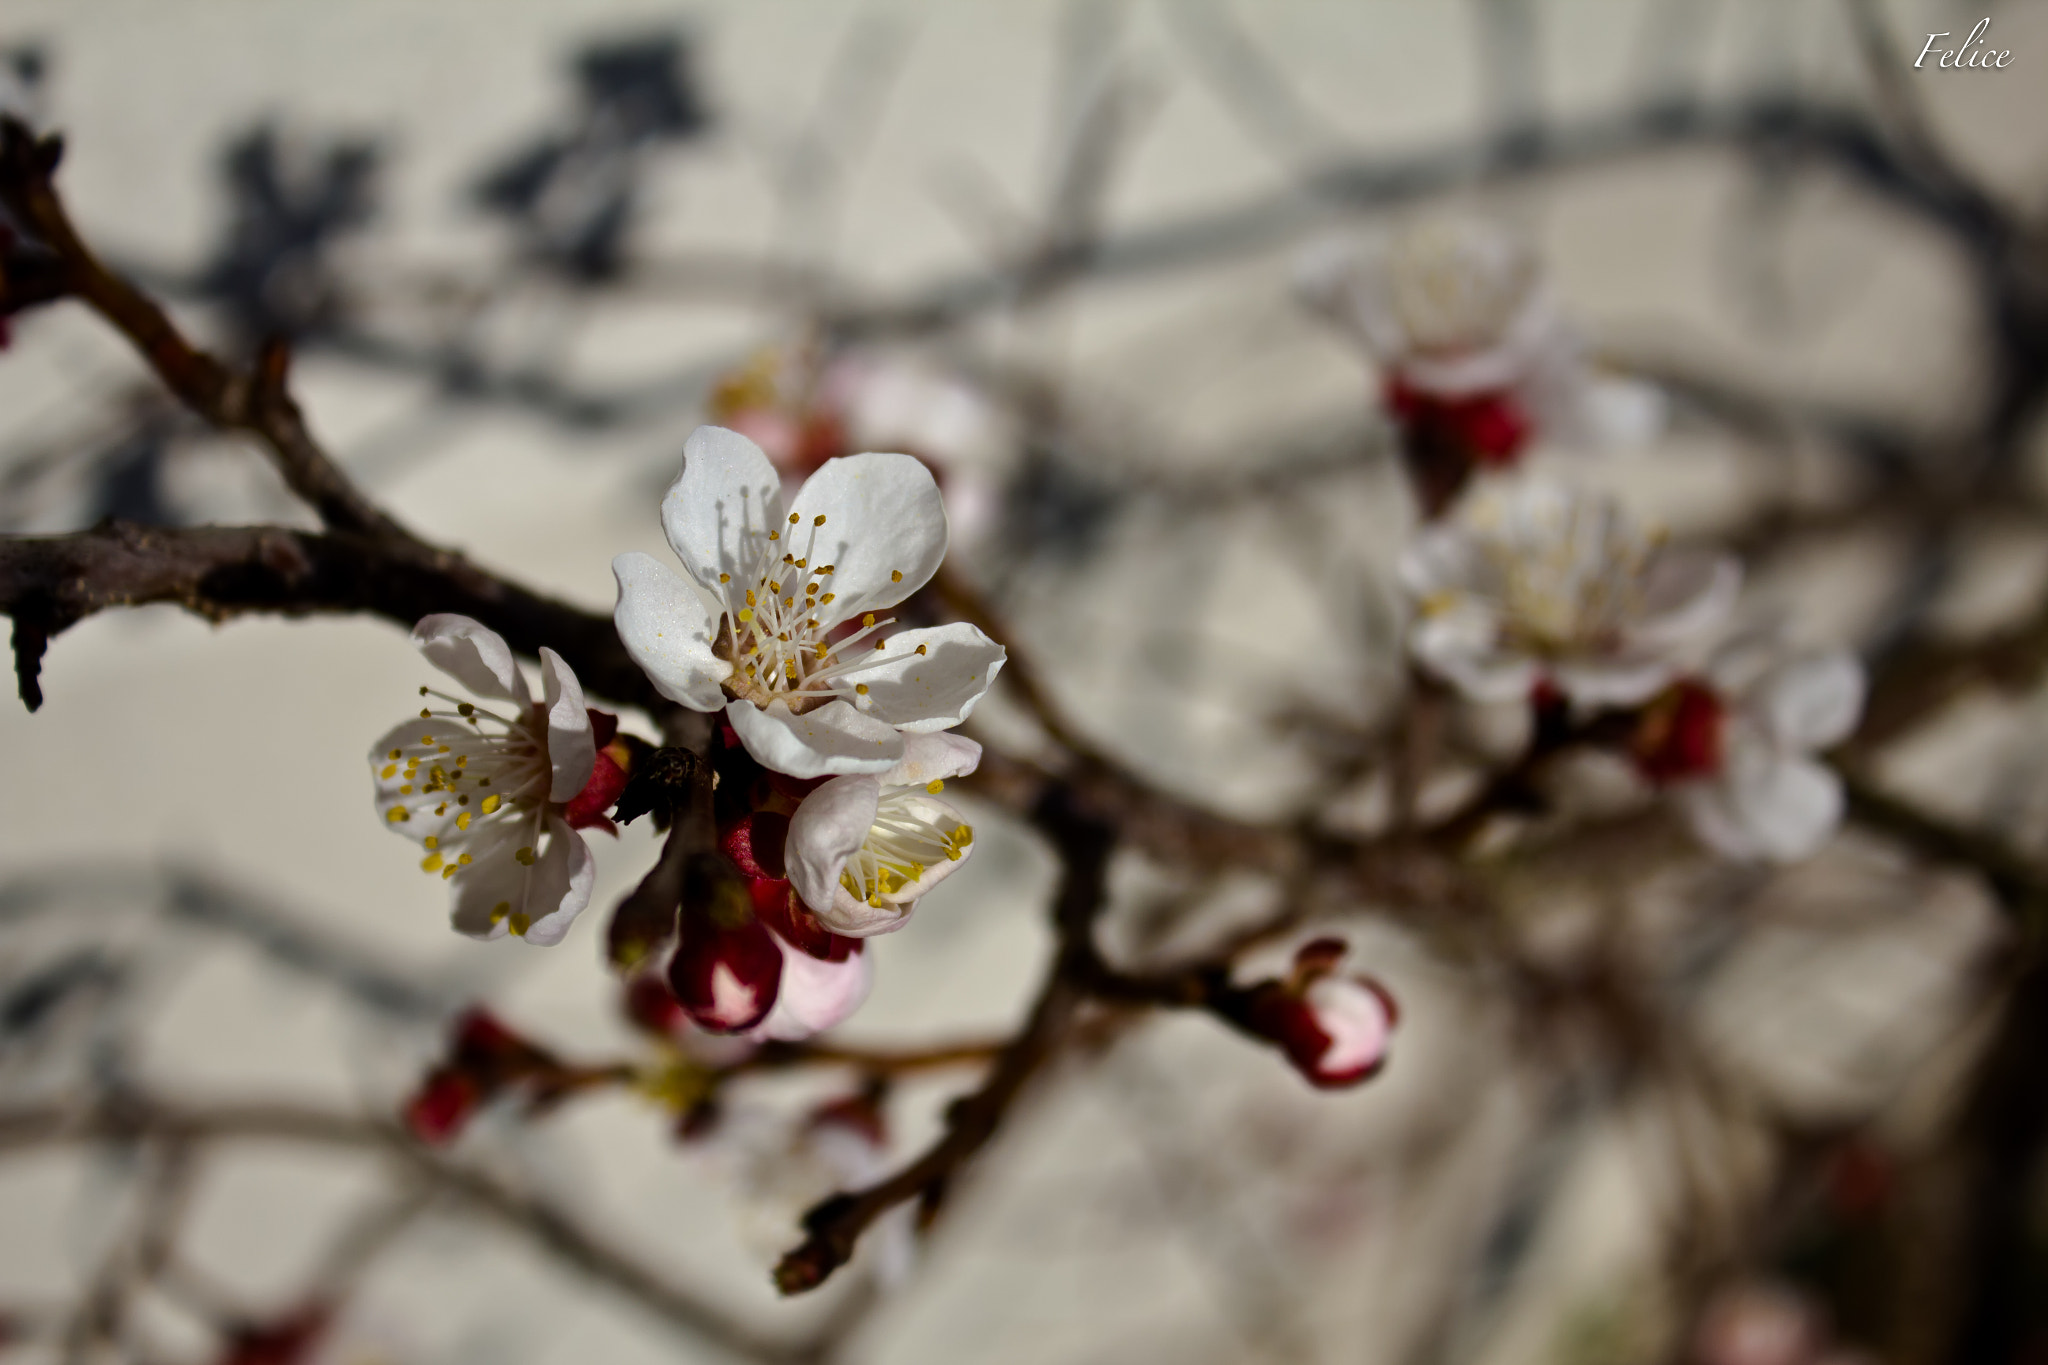 Photograph Apricot Blossom by Felice V. on 500px